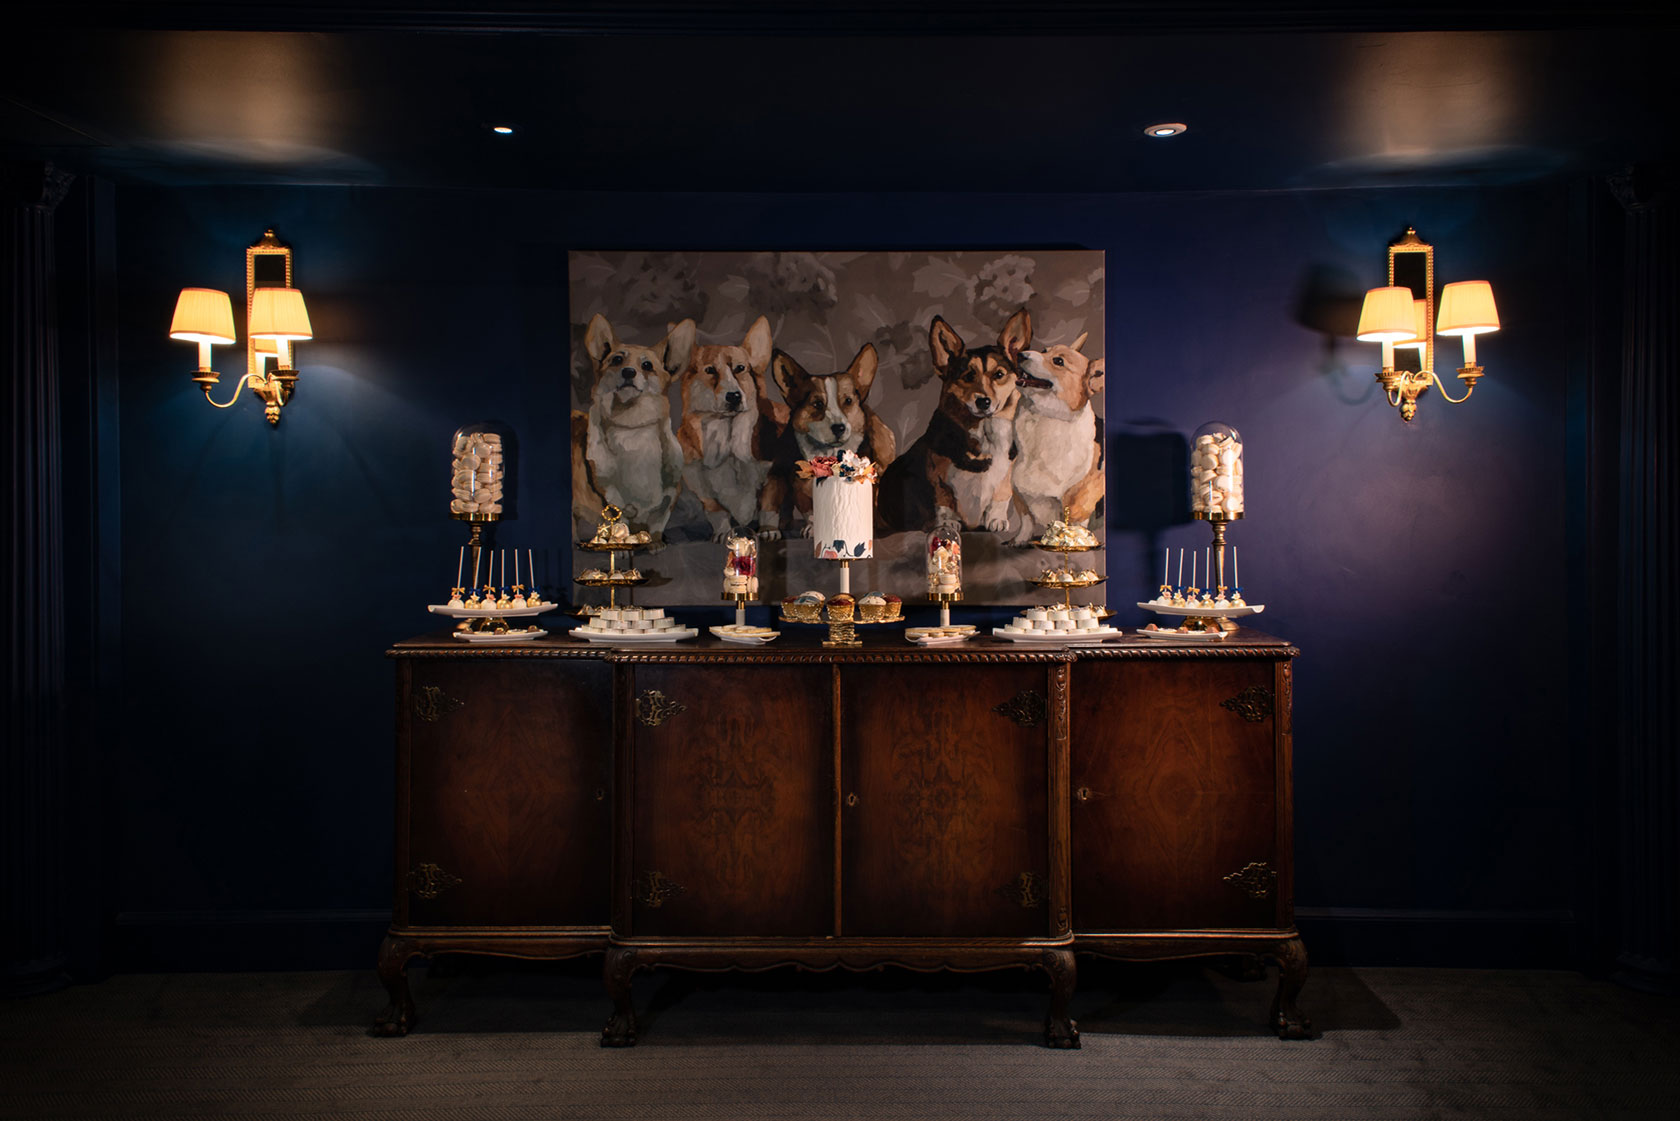 Placed in front of the magnificent portrait of the Queen's beloved Corgis, a small bespoke Indulgence Bar® by GC Couture